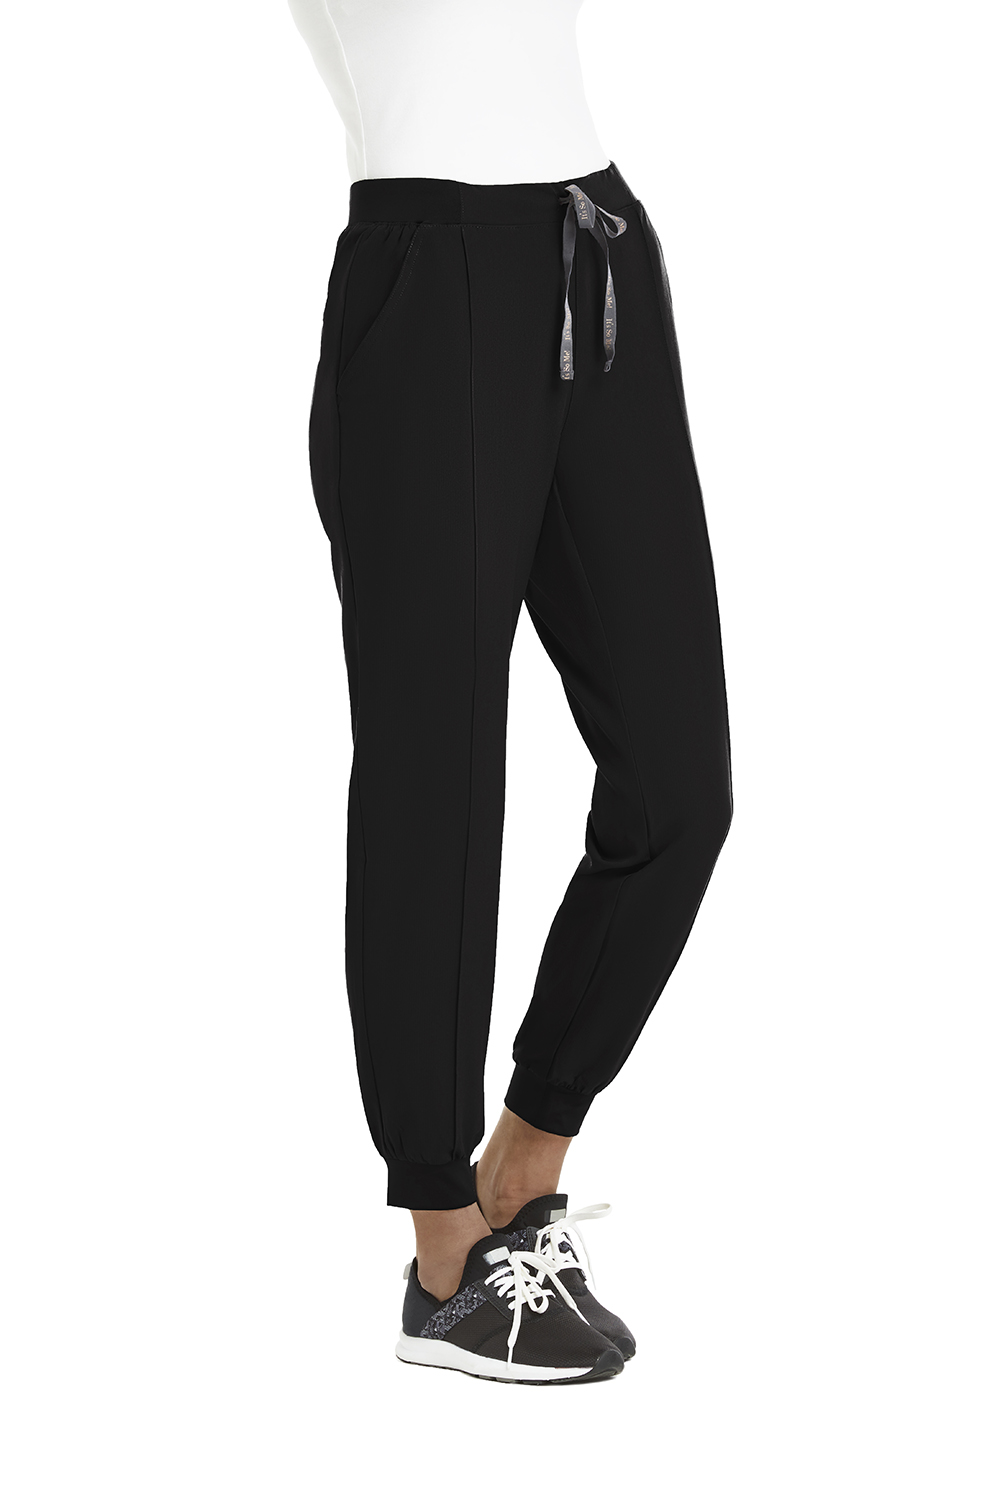 SoMi by AUW - Women's Knit Waistband Jogger Pant-